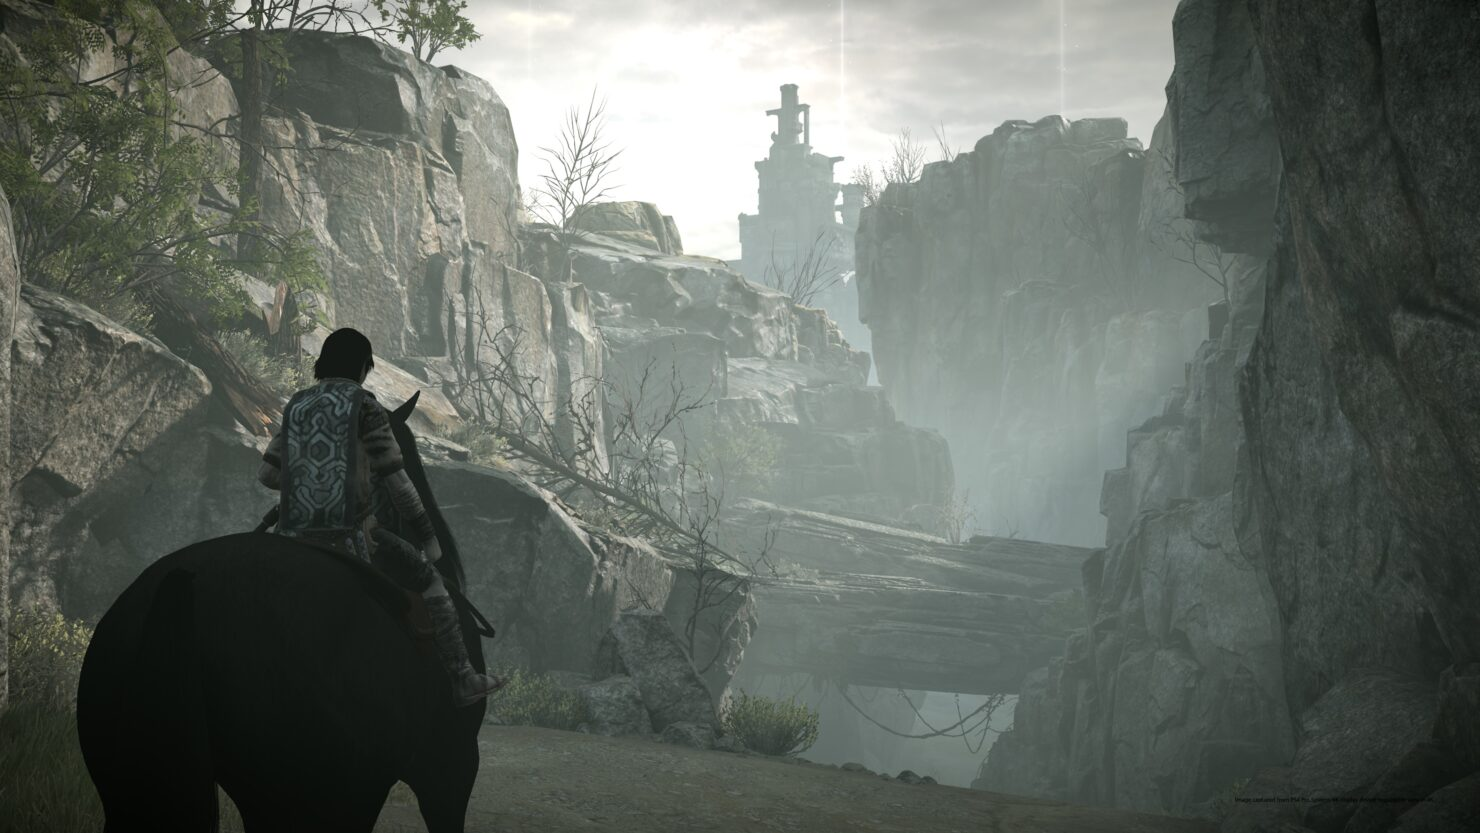 shadow-of-the-colossus-on-ps4_38893786592_o